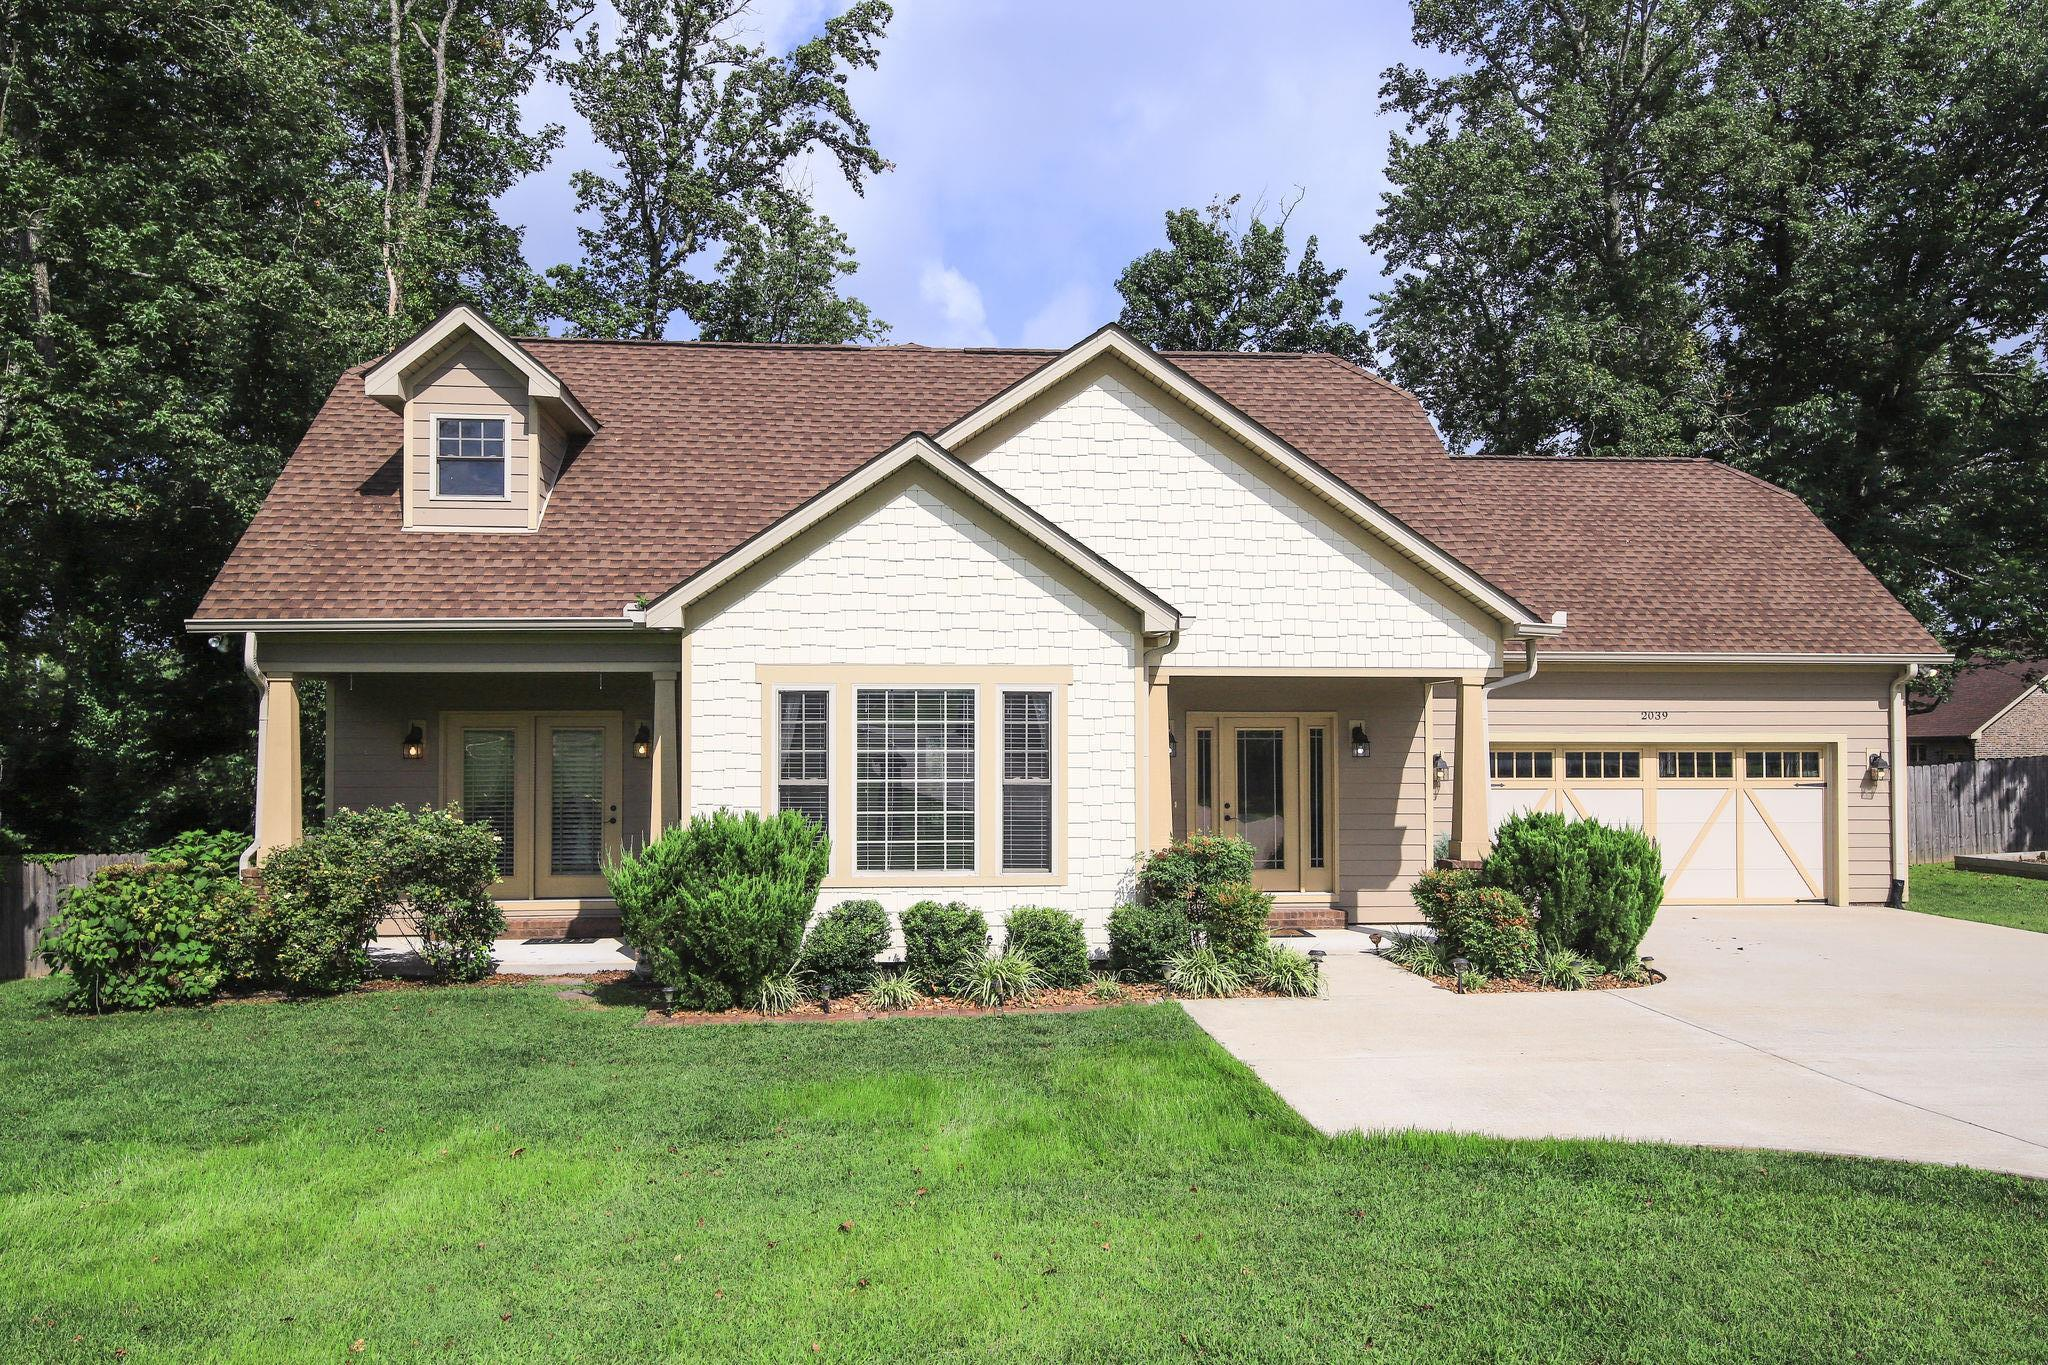 $299,900 - 3Br/3Ba -  for Sale in Ridgetop Station, Goodlettsville